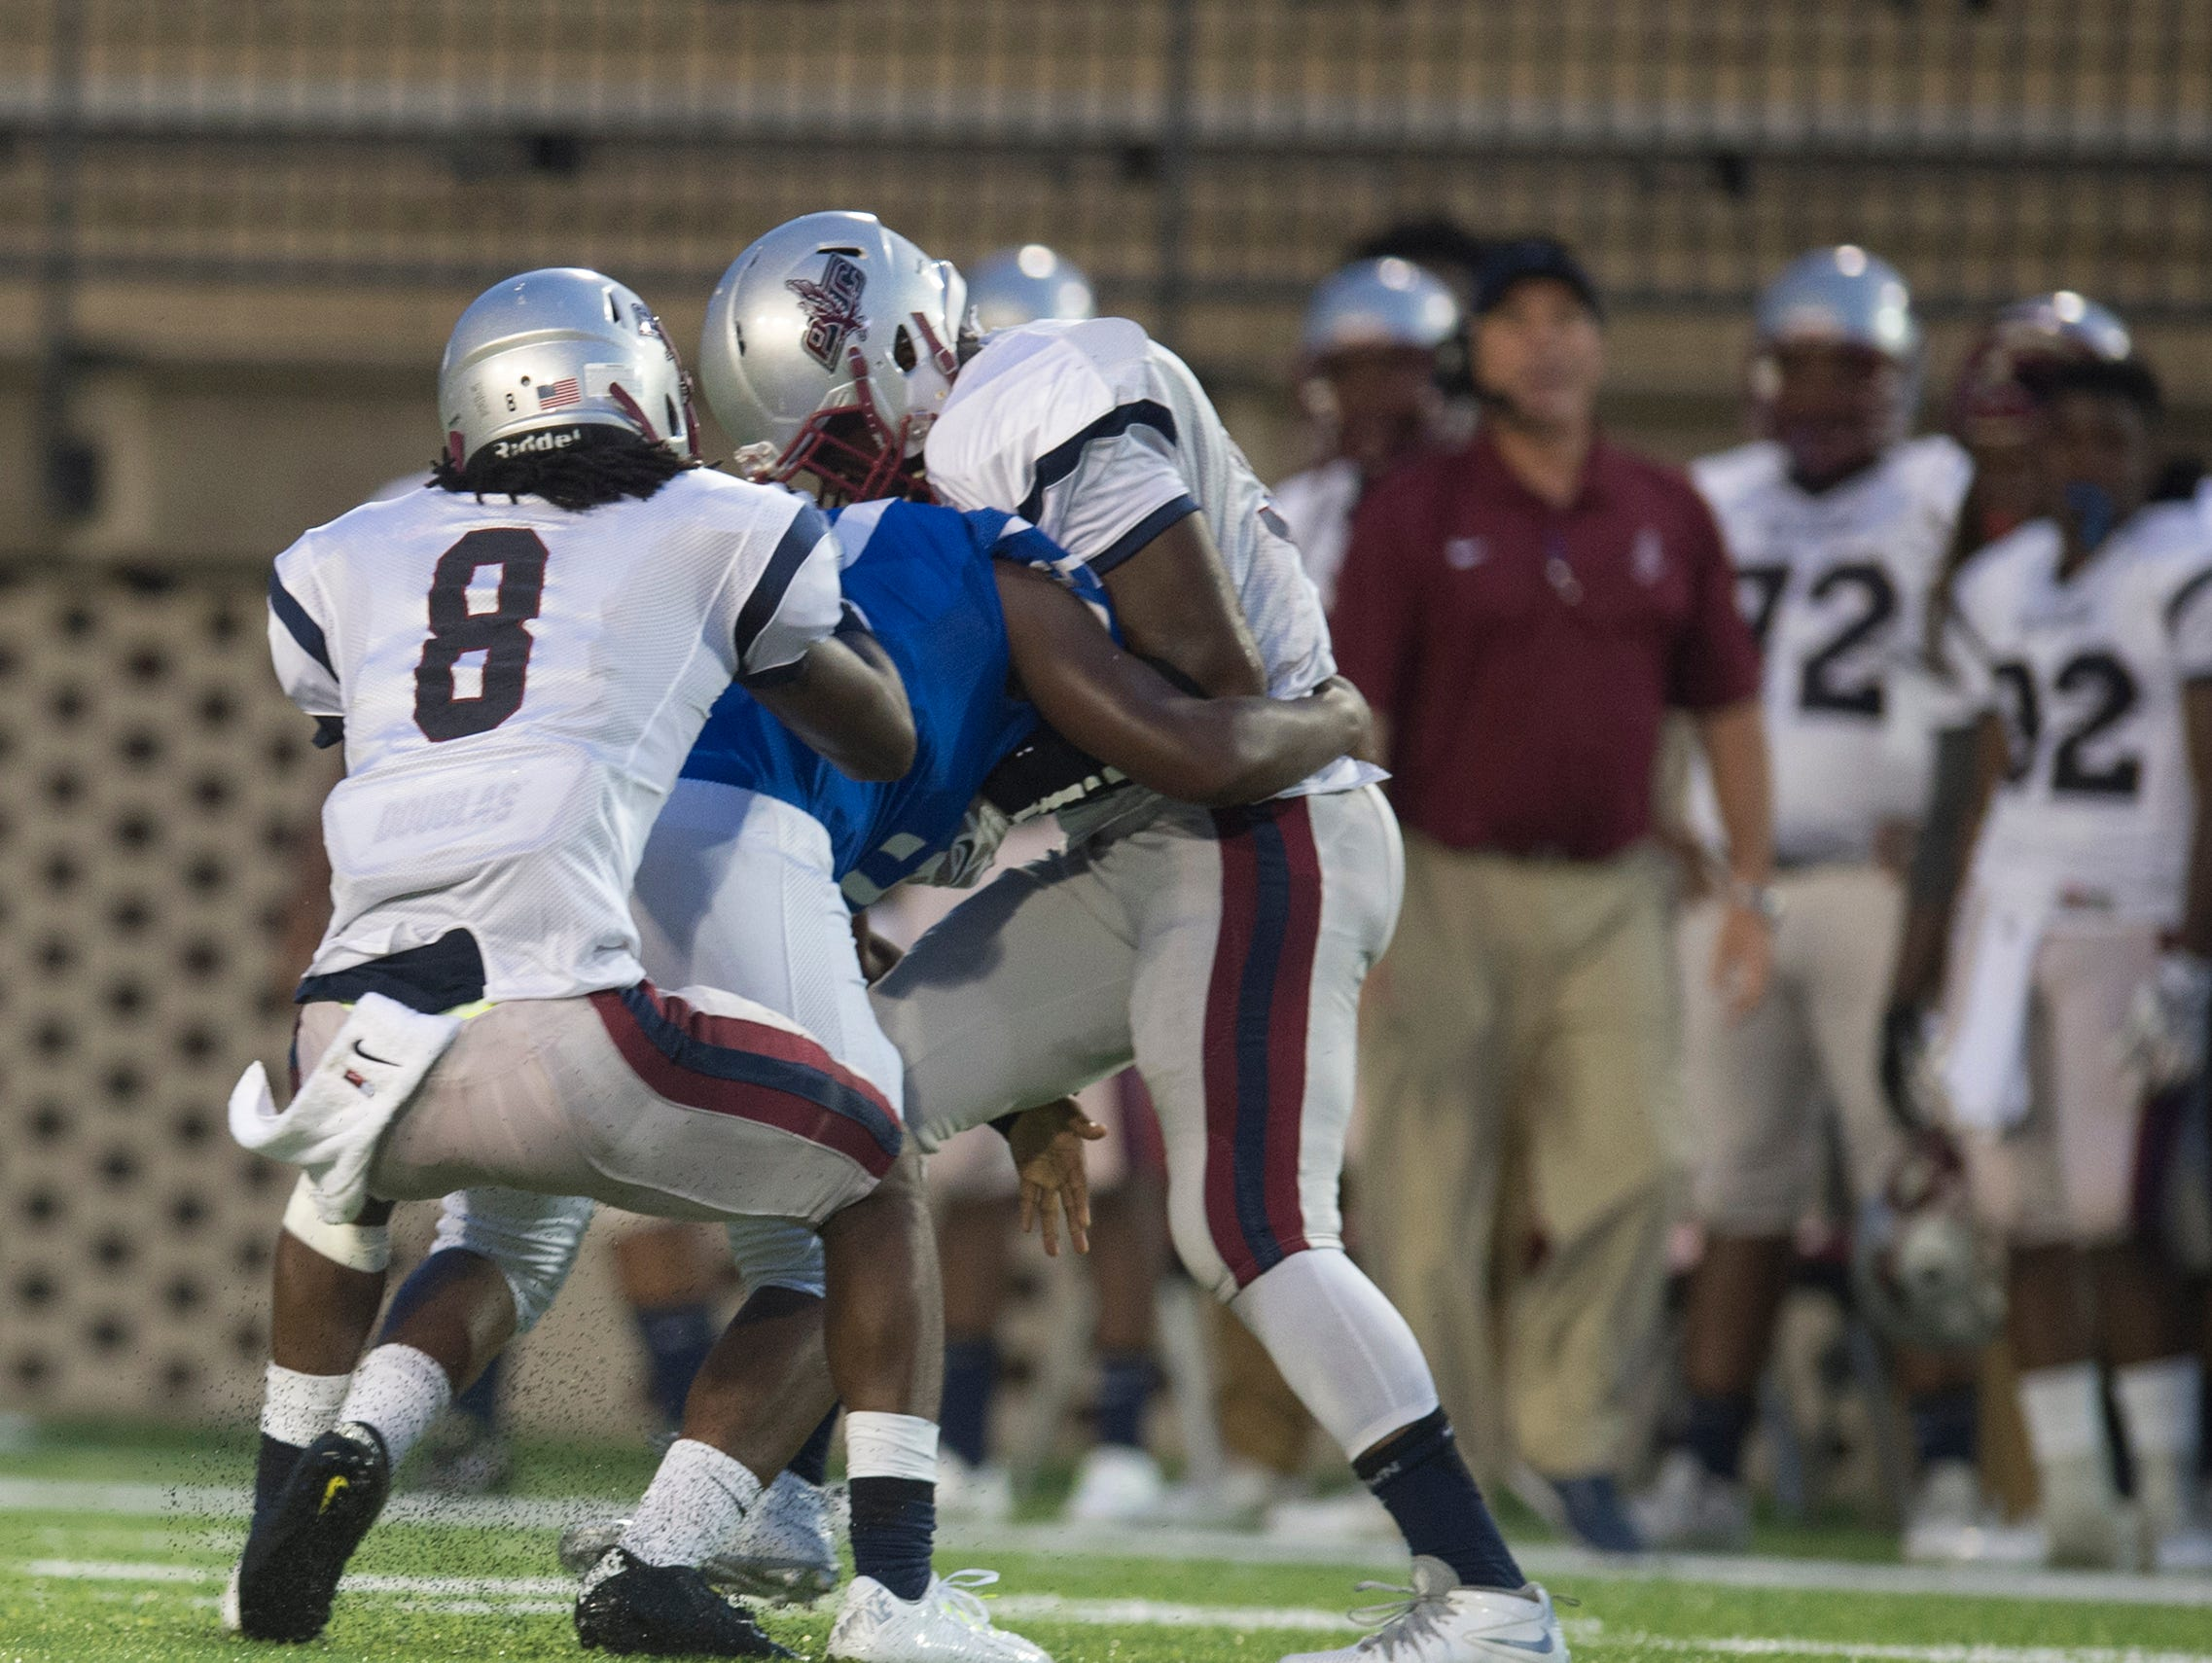 Park Crossing's Prentice James Blue attempts to pull Lanier's Demetrius Brown off of Park Crossing's Jocquez Dixon as a fist fight broke out between them during the AHSAA game between Park Crossing High School and Lanier High School on Friday, Aug. 28, 2015. Three players from each team were ejected form the game.